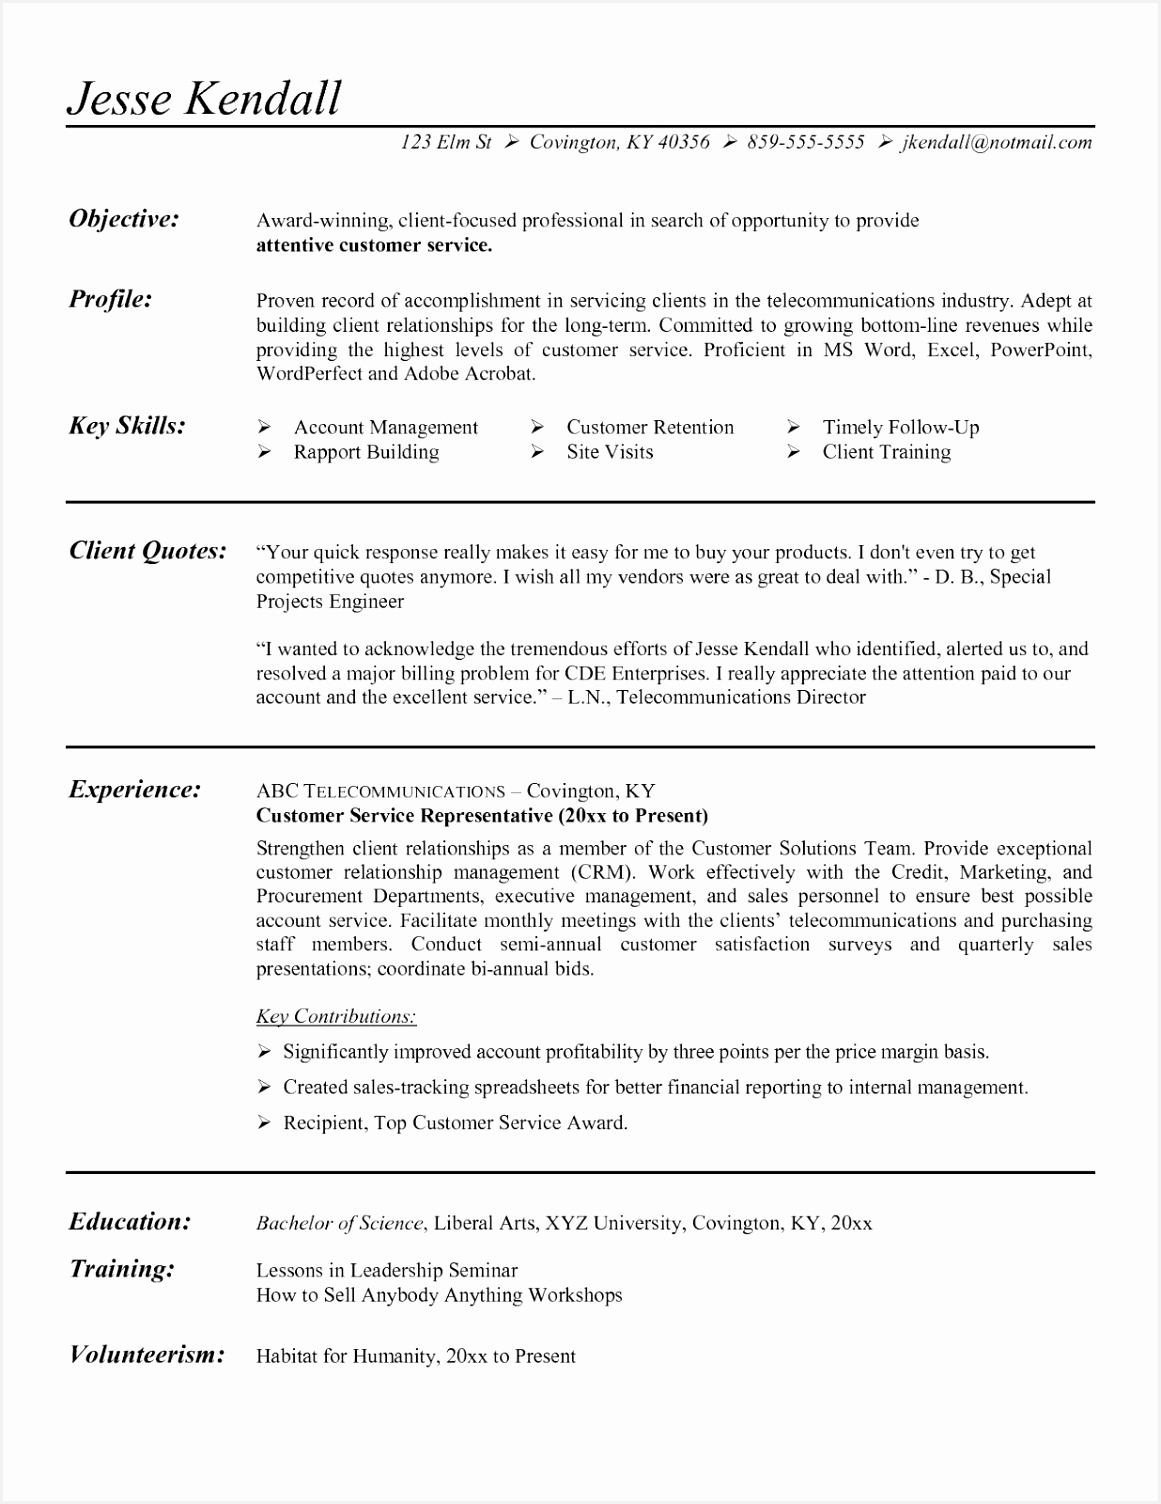 Sample Resume With Awards And Ac plishments Valid Best Resume Samples New Resume Examples Pdf Best Resume Pdf 0d 150411618fhuy